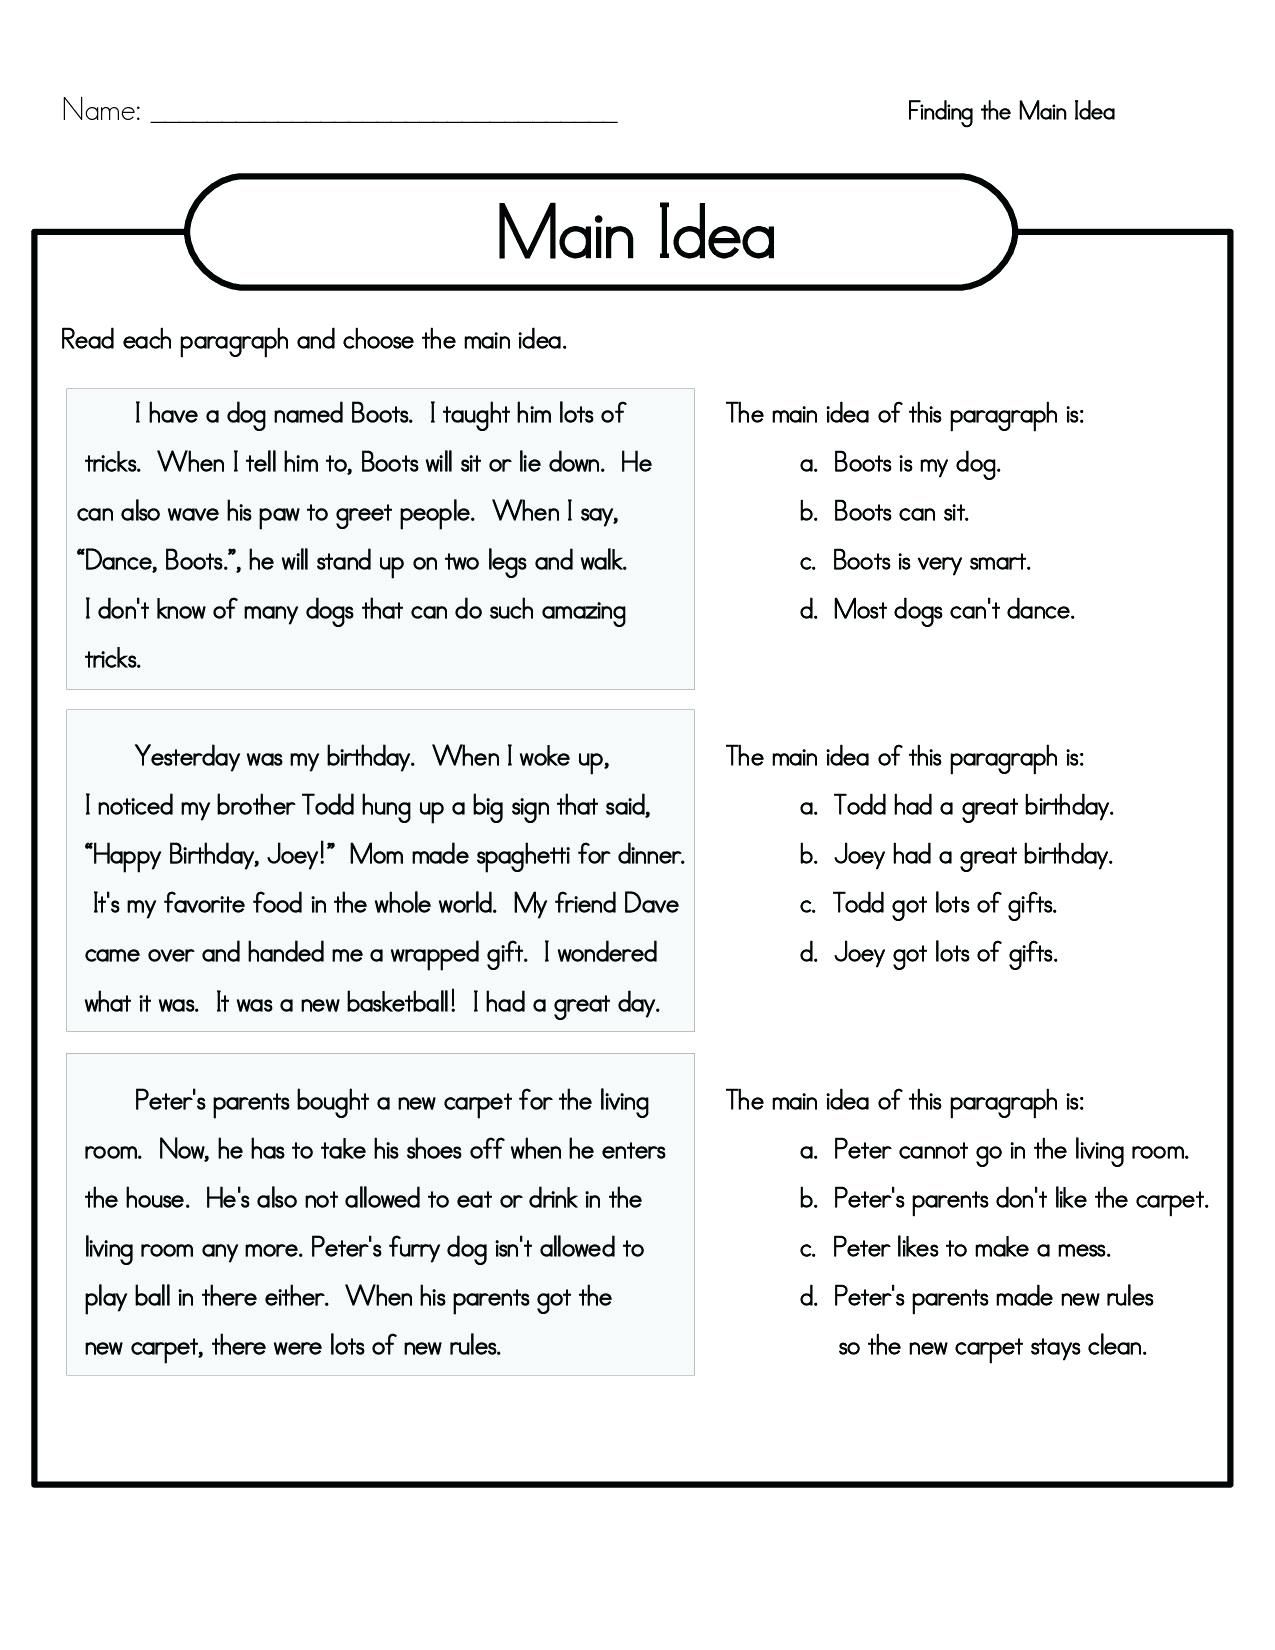 4th Grade Reading Comprehension Worksheets Best Coloring Pages For Kids In 2020 Main Idea Worksheet Reading Comprehension Worksheets Main Idea Lessons